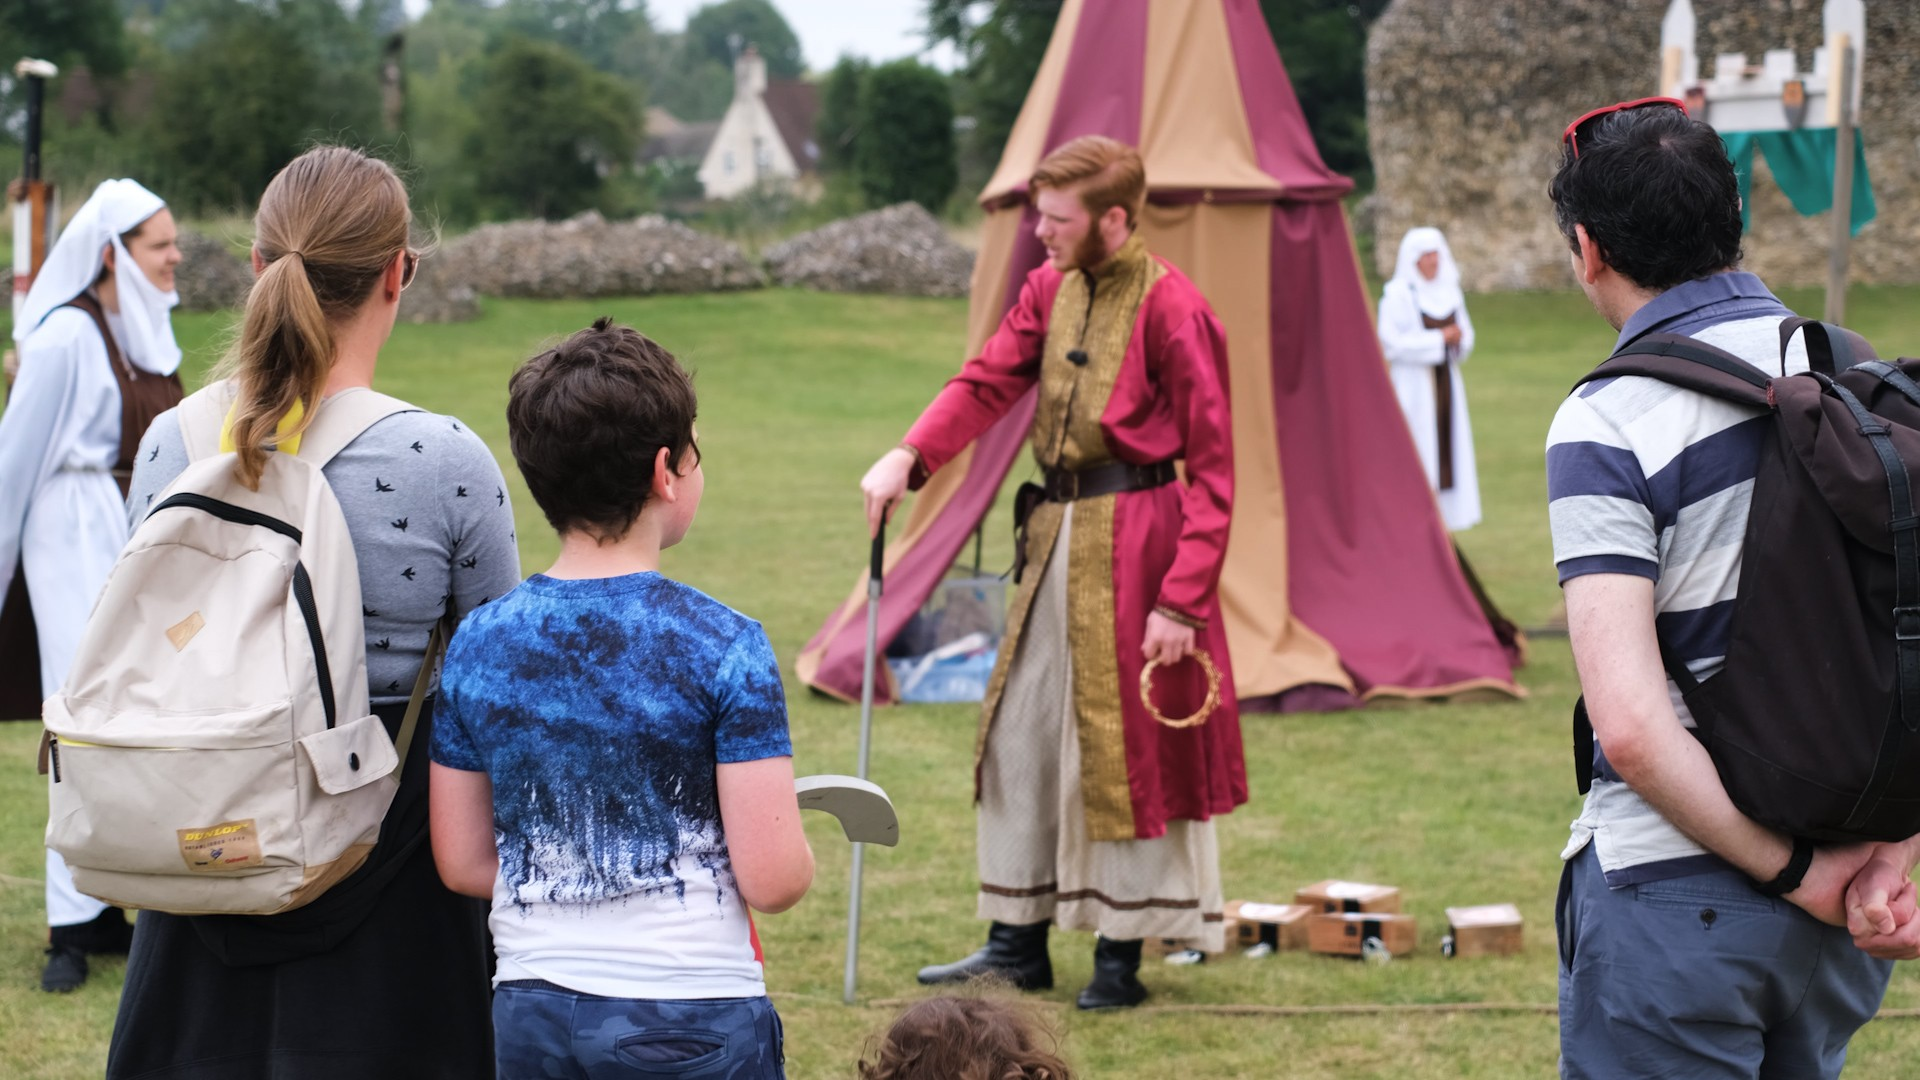 People at an Adventure Out event with actors in historic garb